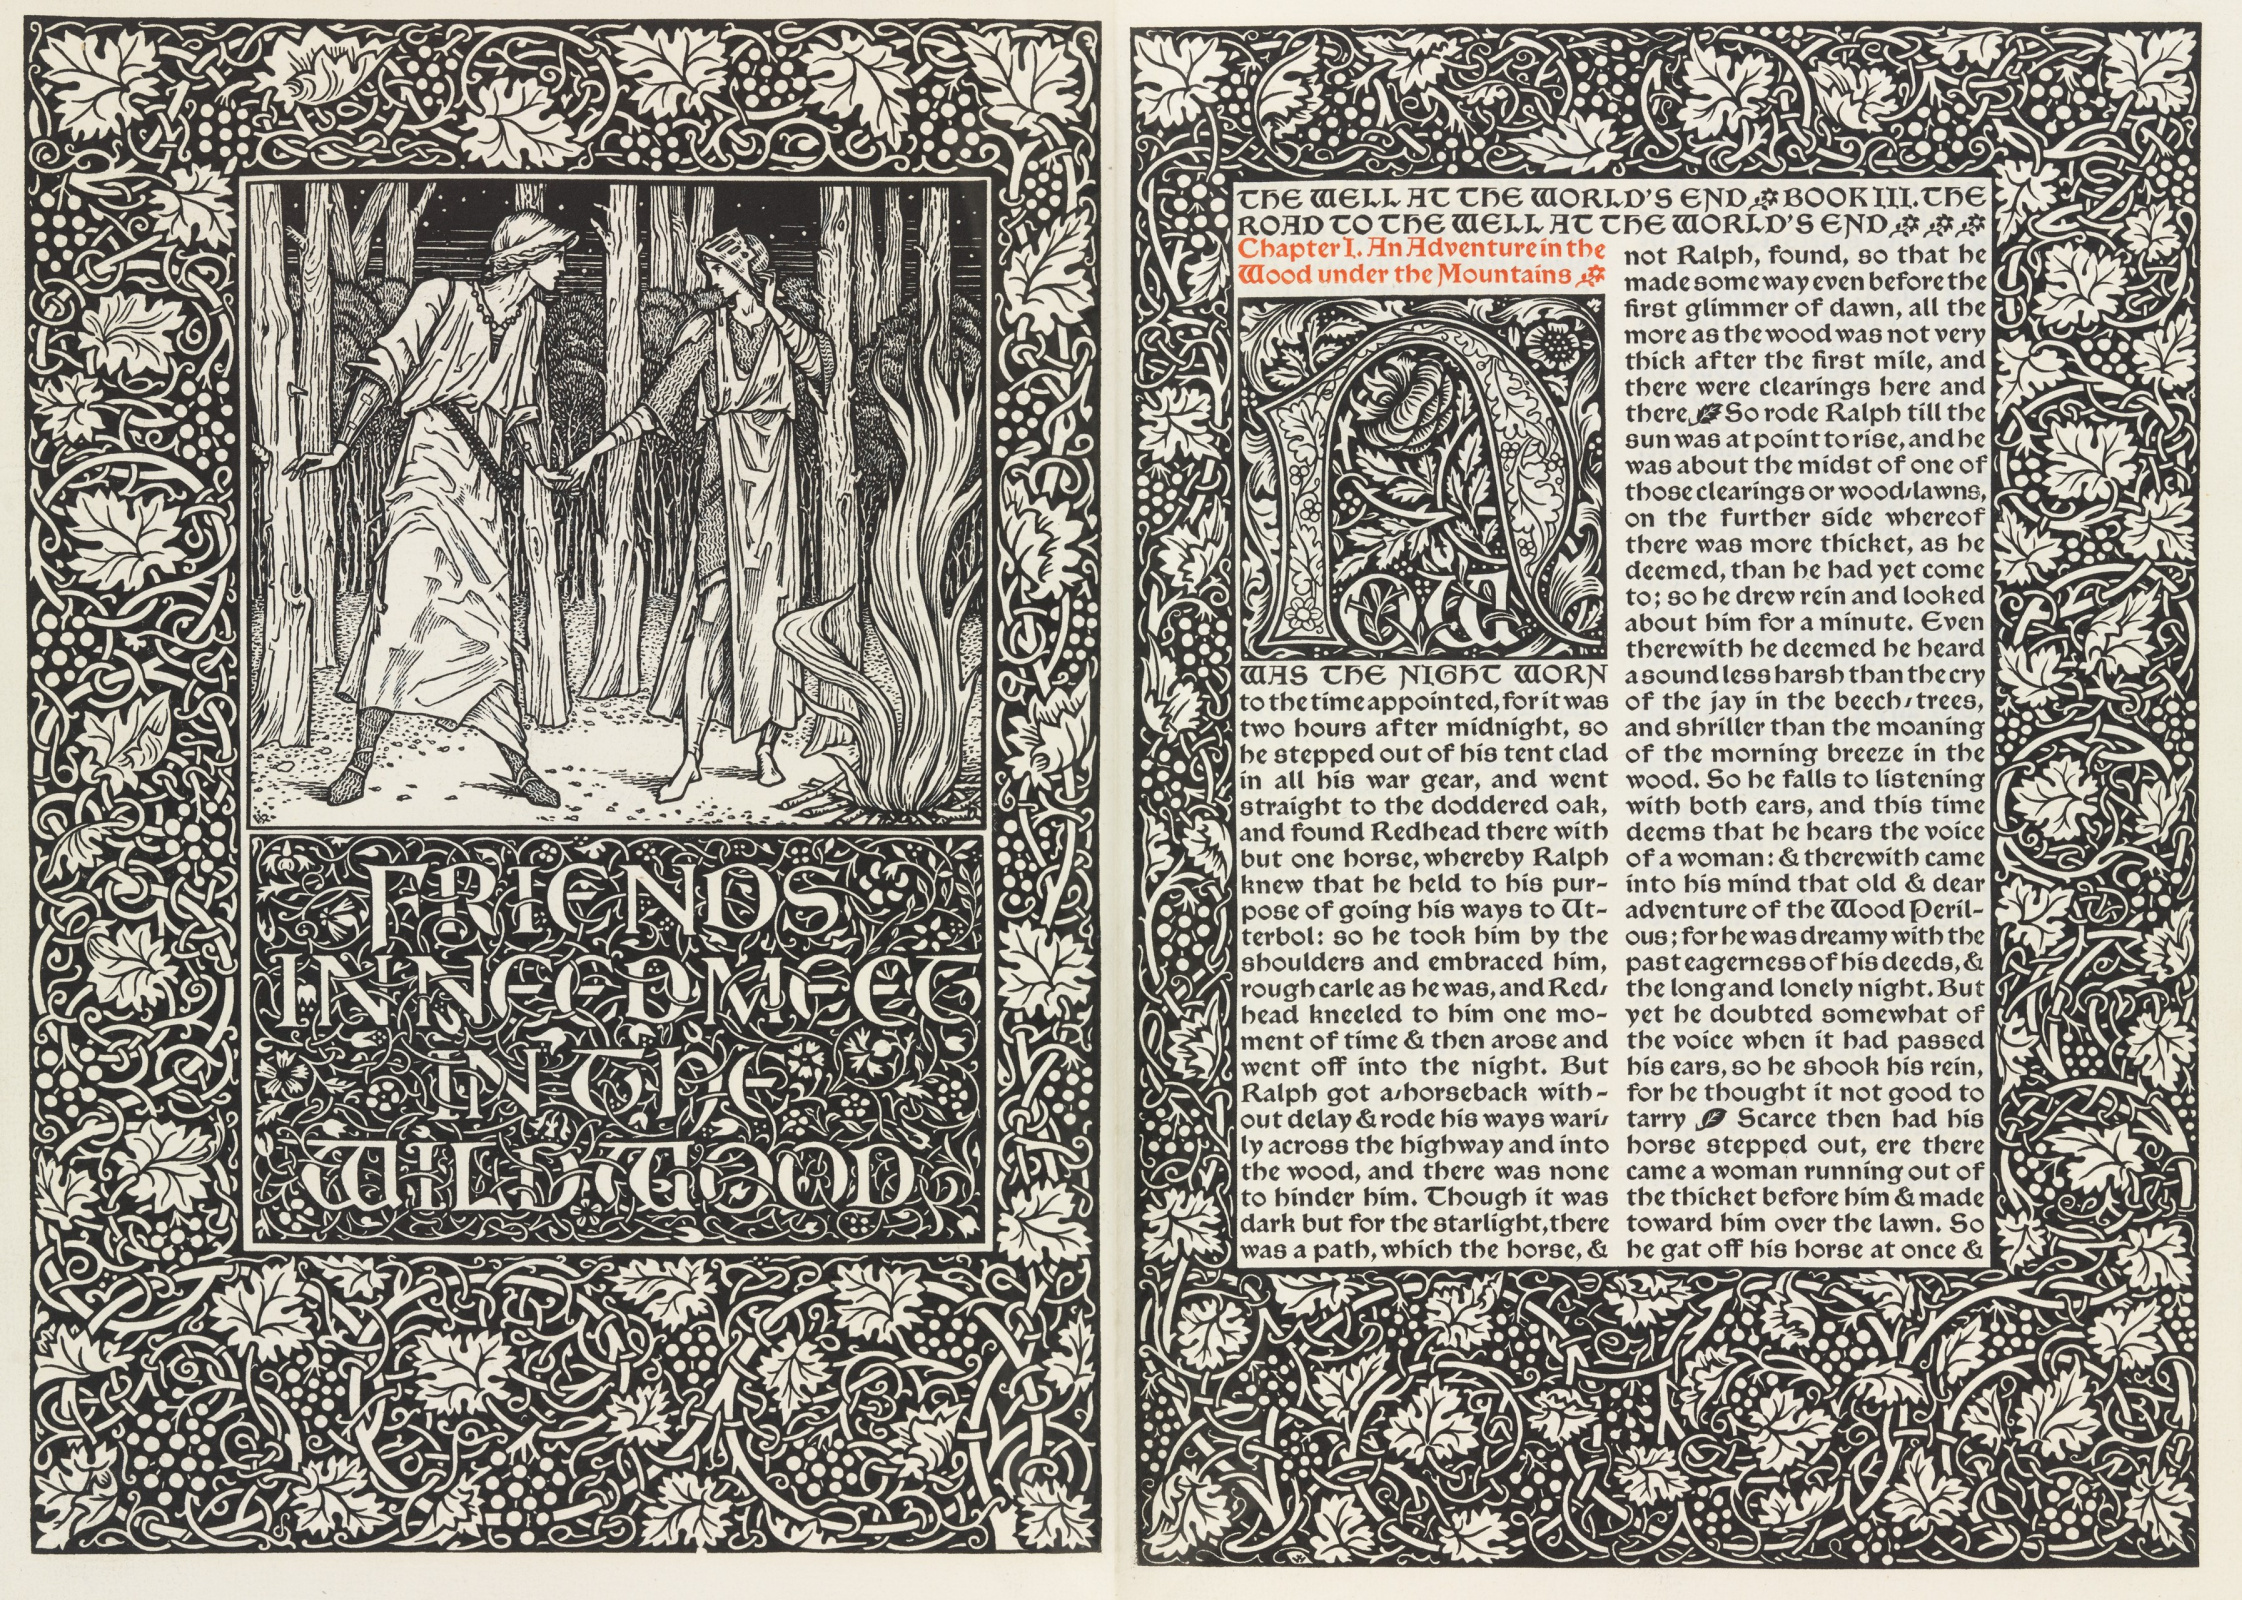 William Morris.  Presse Kelmskott.  Bien au bout du monde